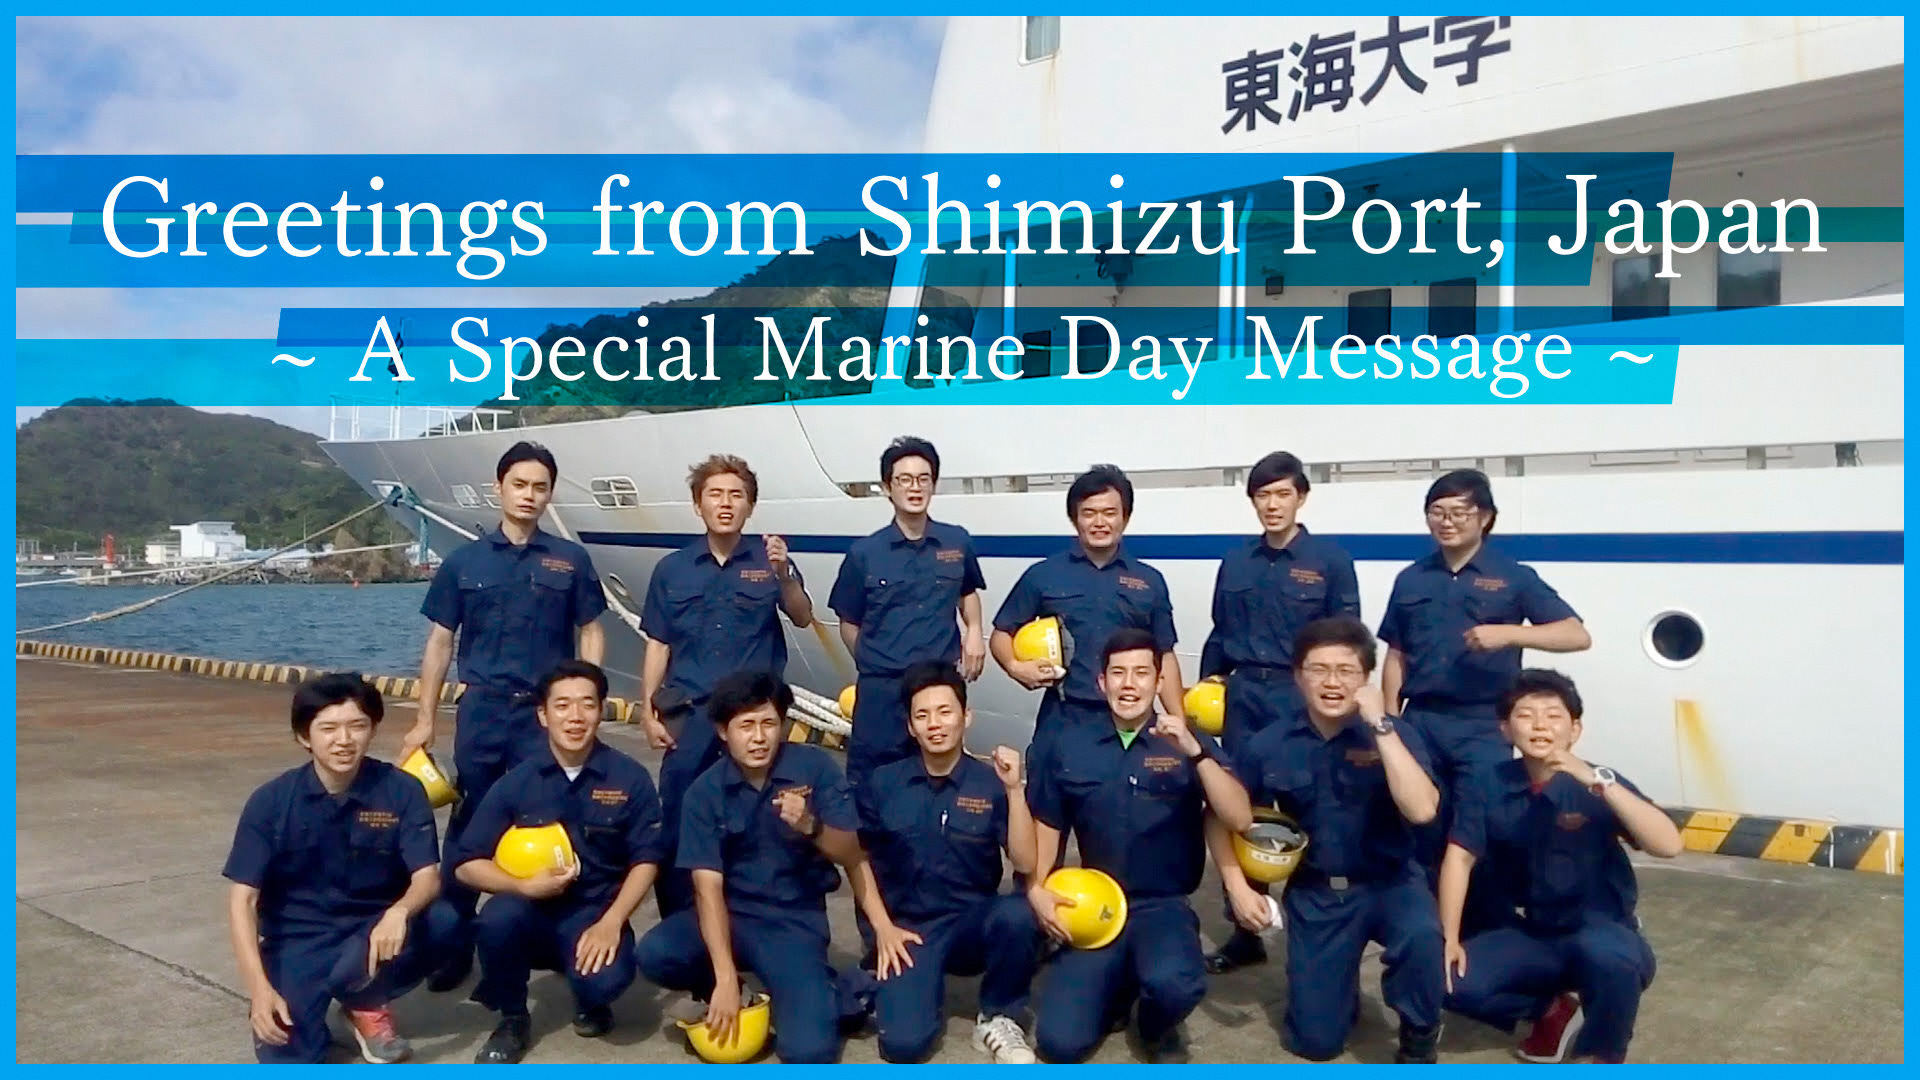 Greetings from Shimizu Port 2021 on YouTube to all crew members!